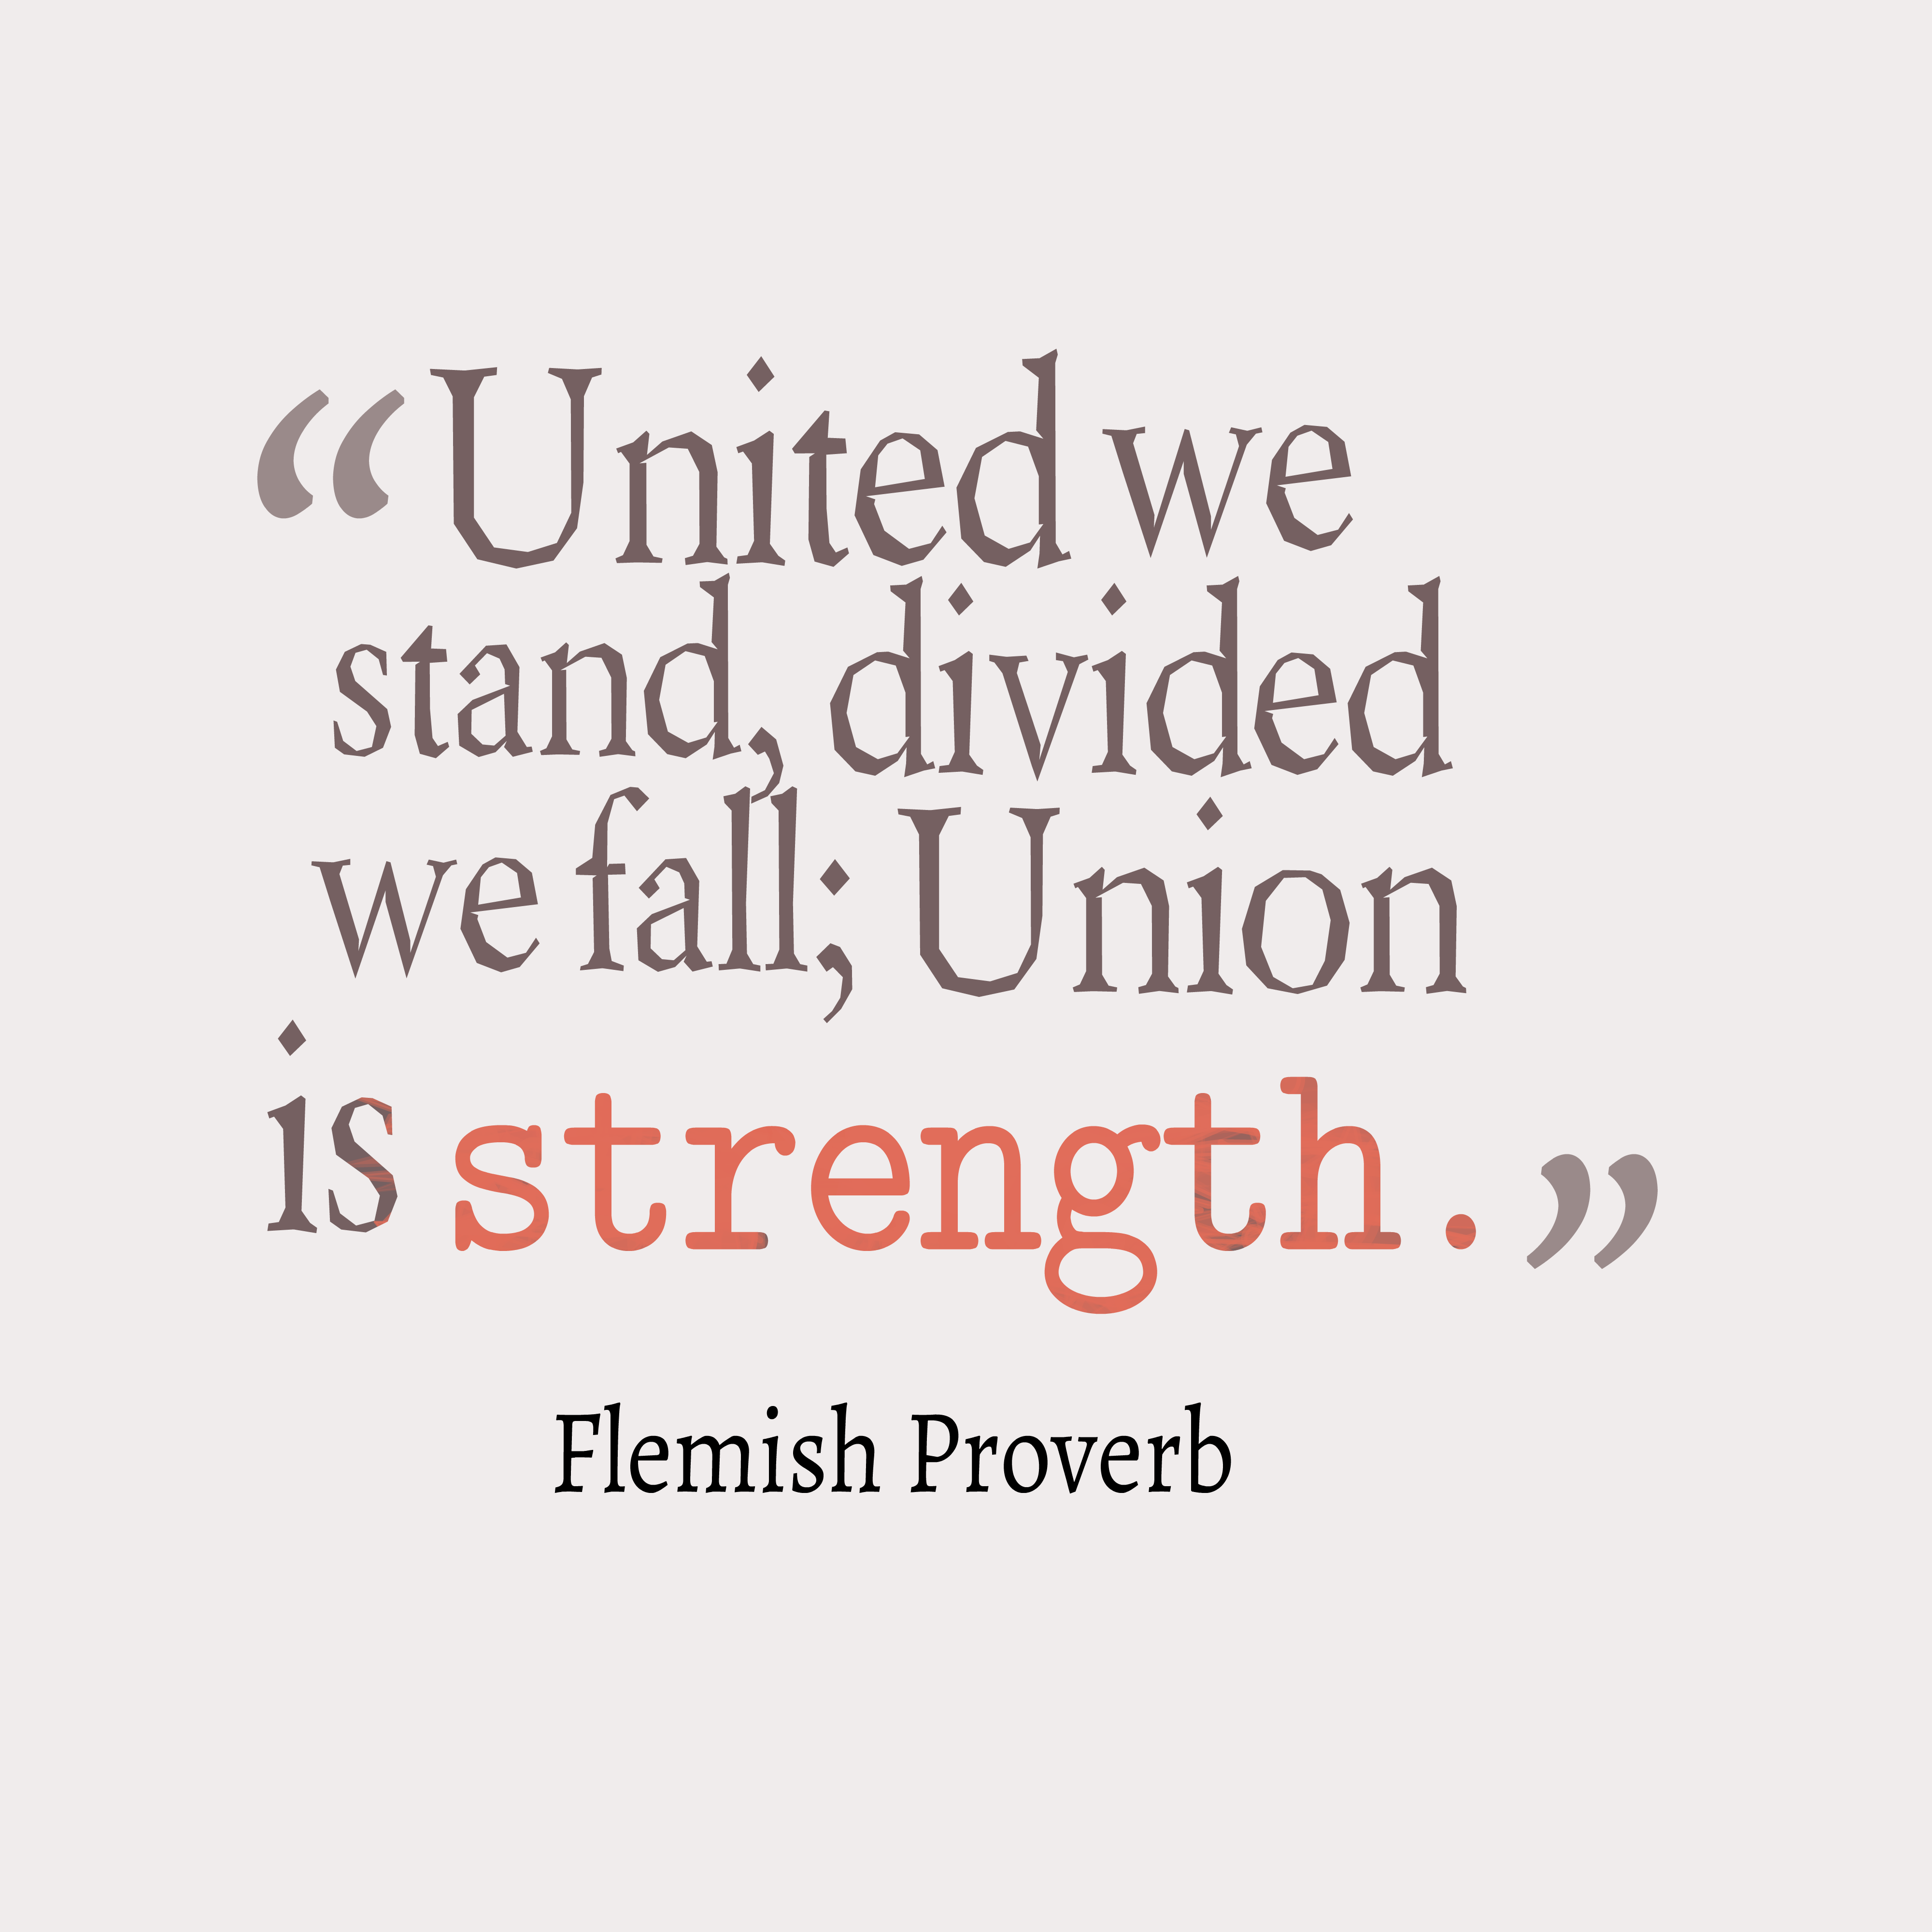 union is strength essay